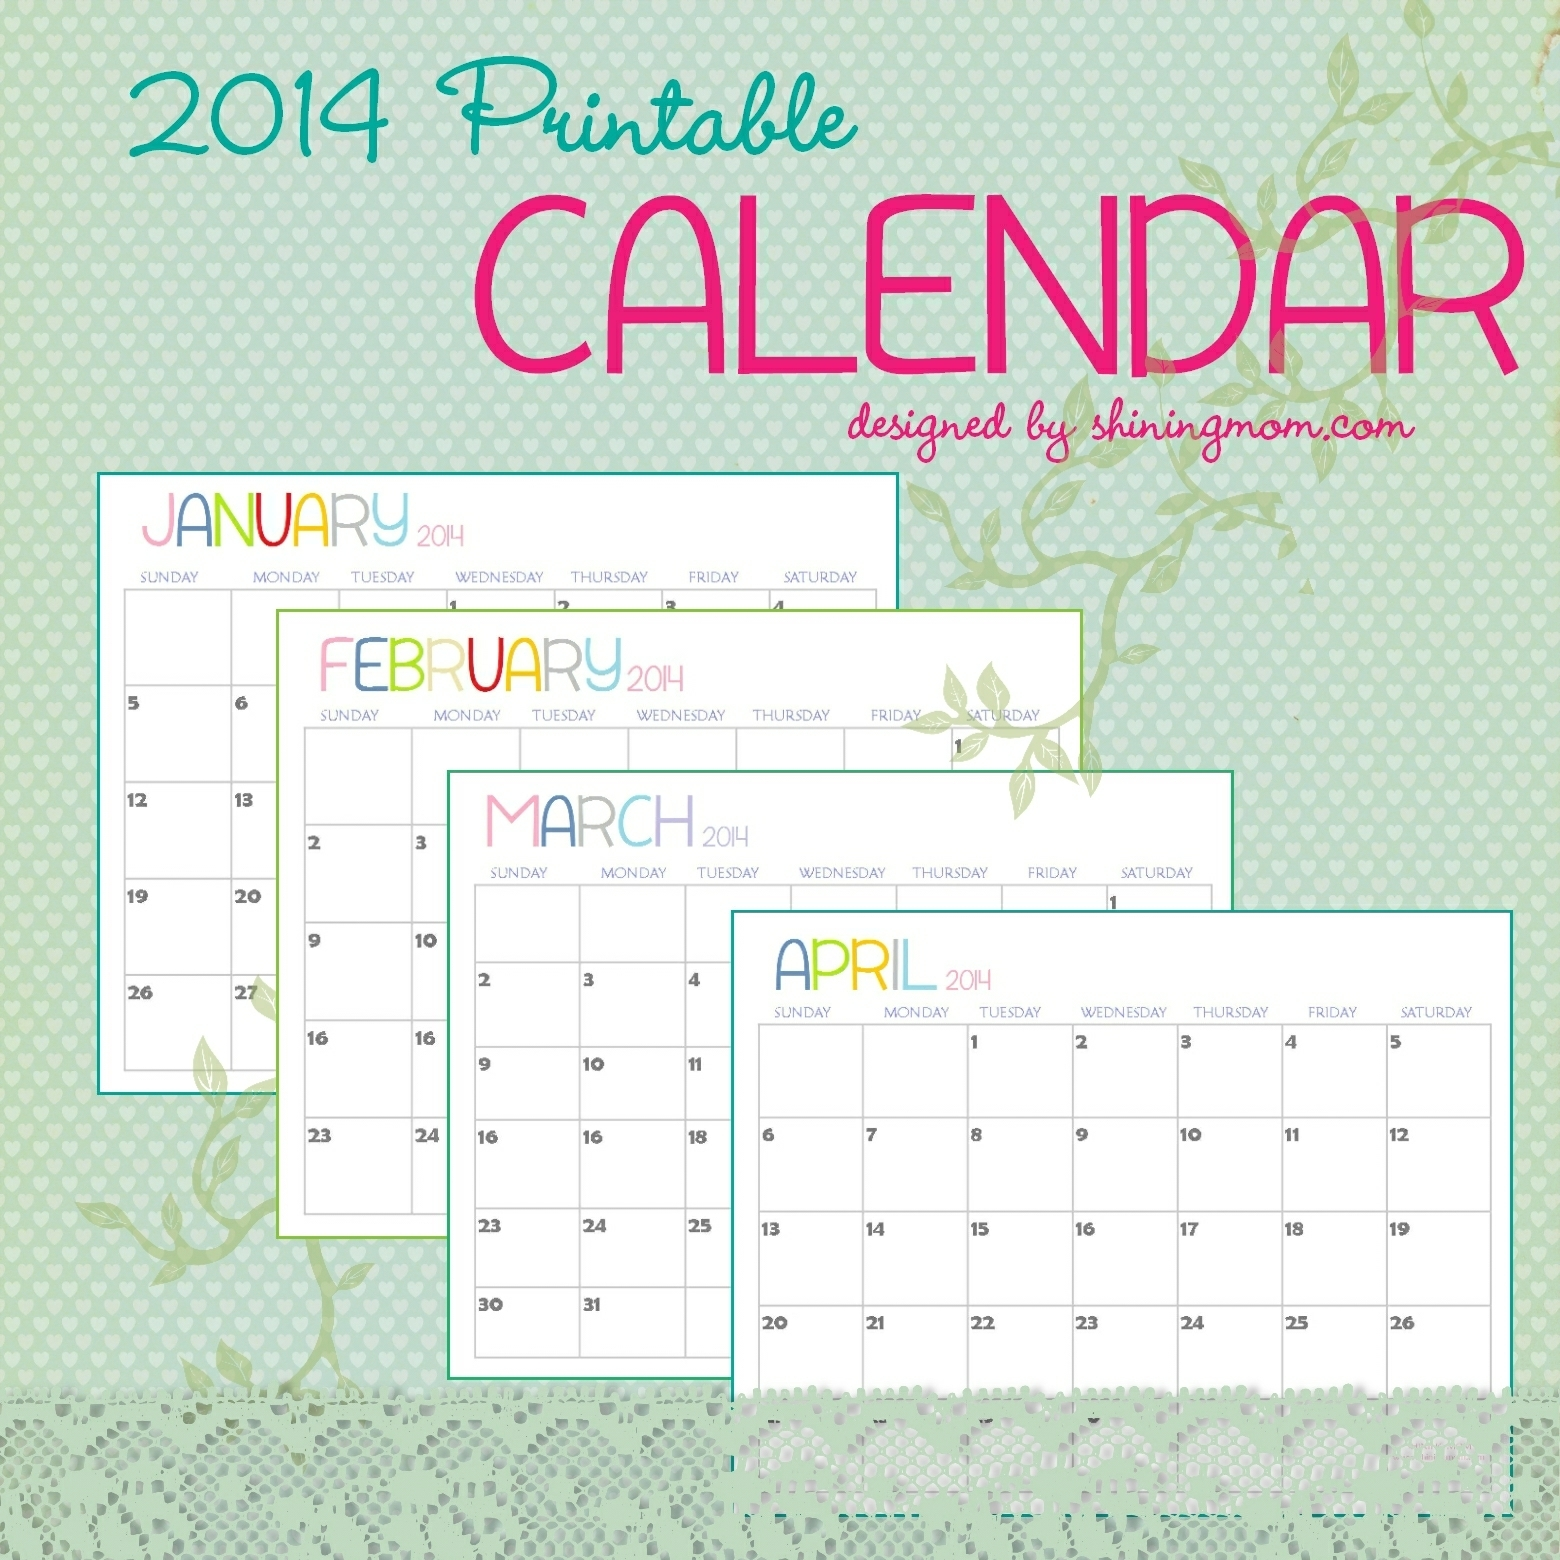 The Free Printable 2014 Calendarshining Mom Is Here!